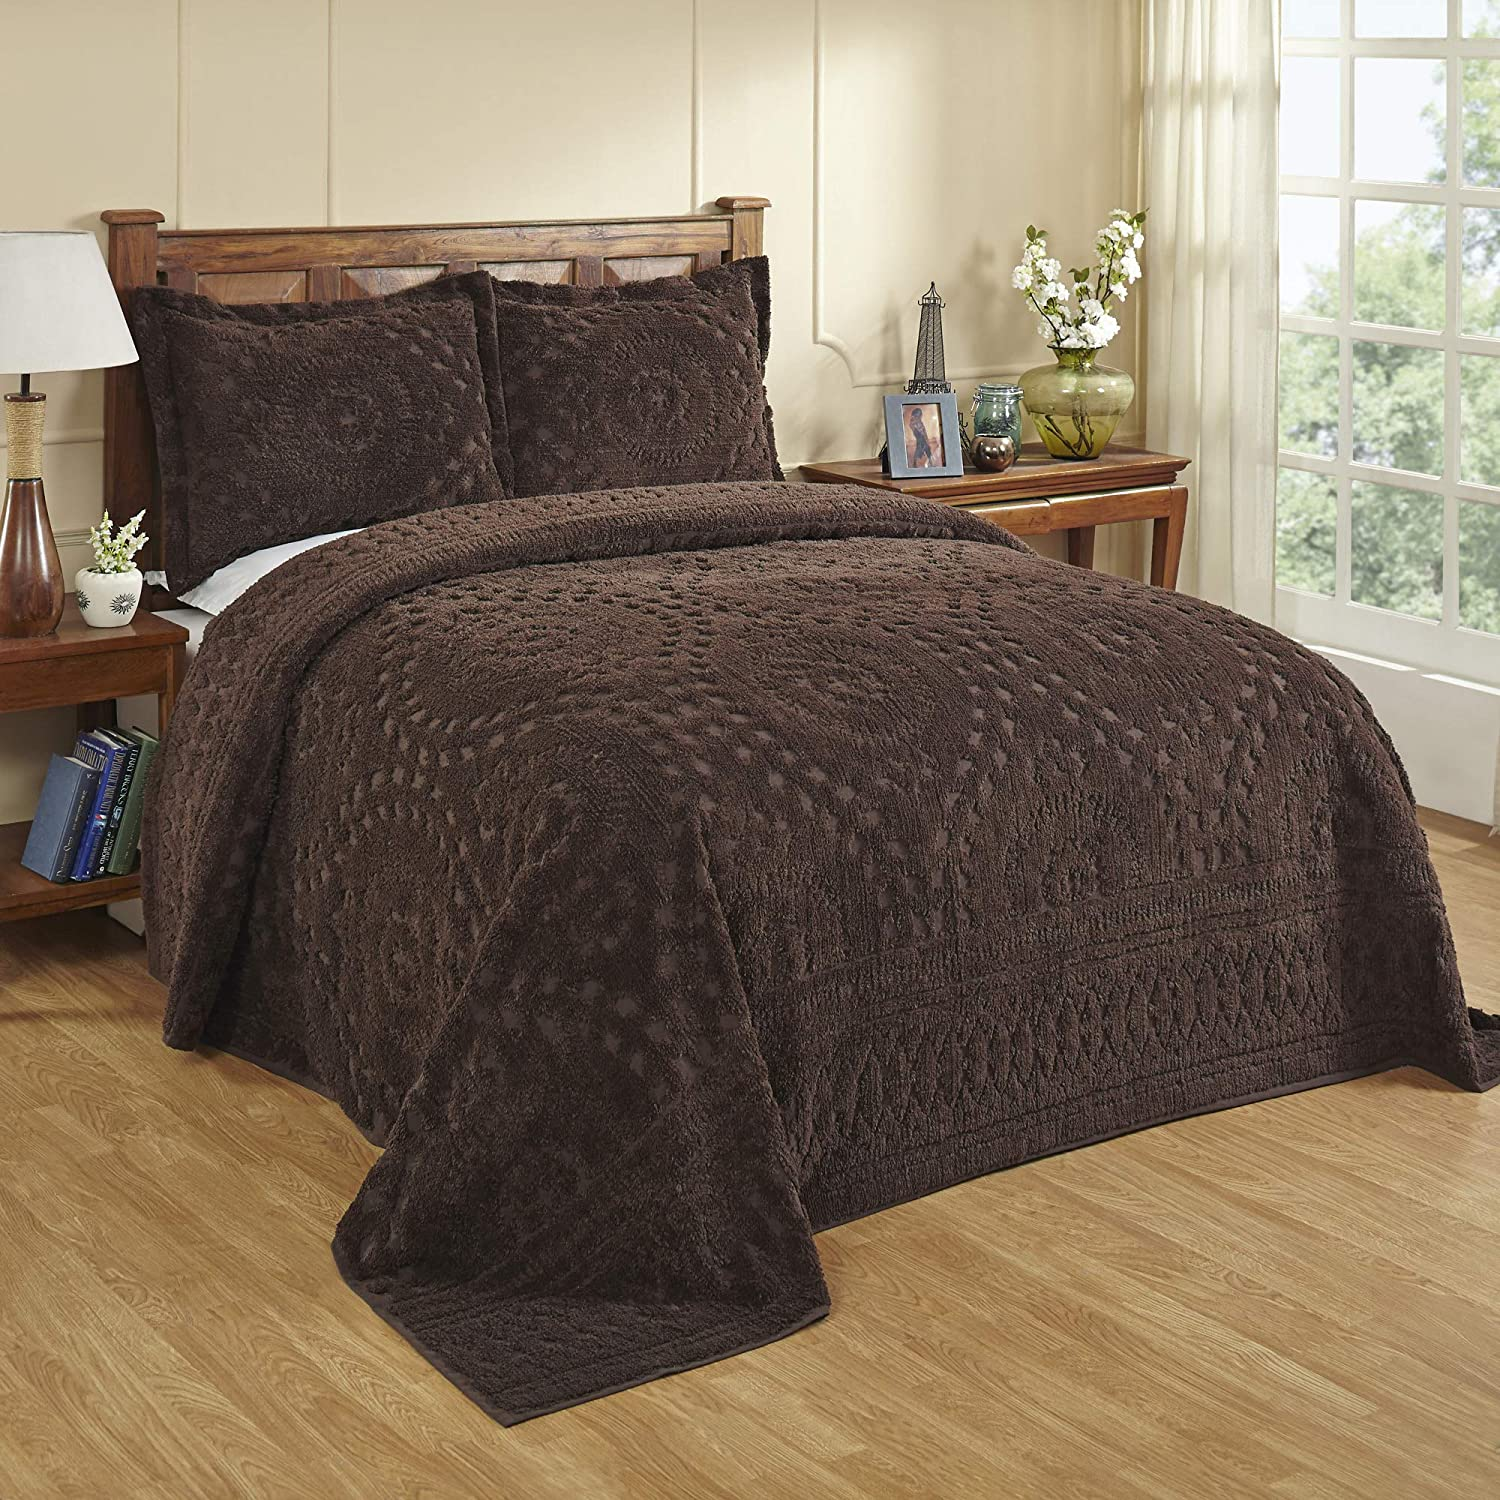 Better Trends Rio Collection is super soft and light weight in Floral Design 100% Cotton Tufted Unique Luxurious Machine Washable Tumble Dry, King Bedspread, Chocolate